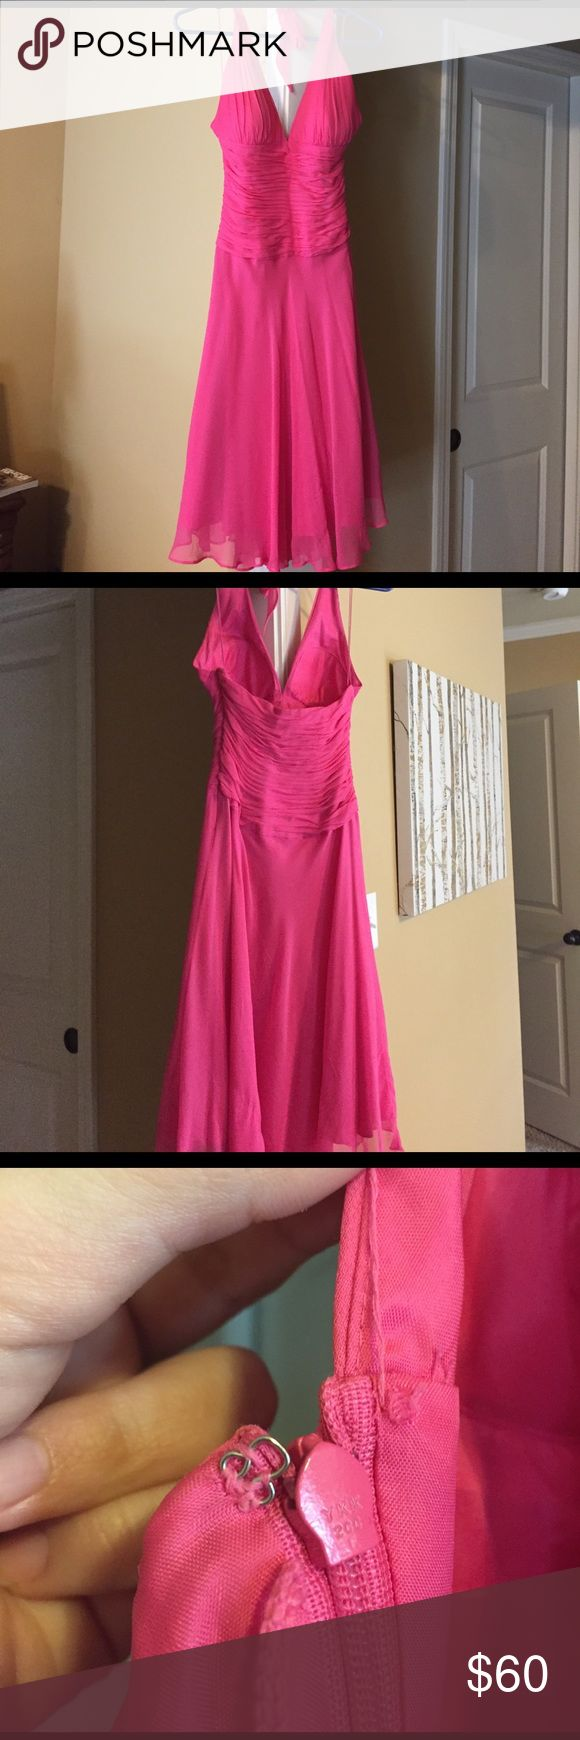 Pink halter dress Worn a few times. Hot pink hits right above knee. Only flaw is seen in 3rd pic. The hook closer is missing. Still zips properly. The missing closer is hidden under the arm so when zipped you cannot tell. Padded top. Cache Dresses